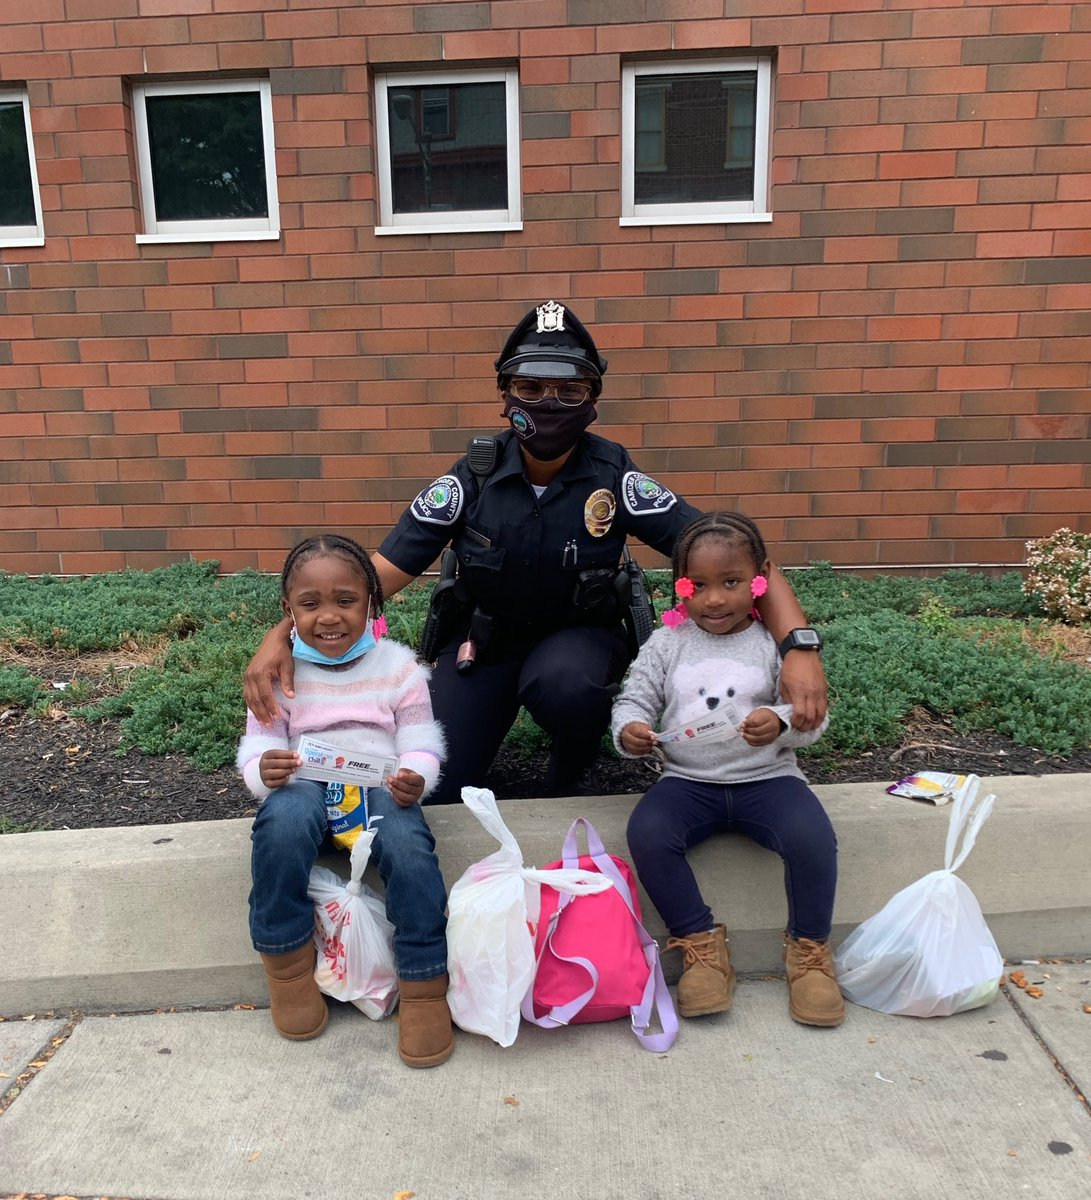 Officer Baker and two cute future officers who can enjoy free slurpees with these @7eleven #OperationChill tickets for good behavior! #CamdenStrong #StrongerTogether